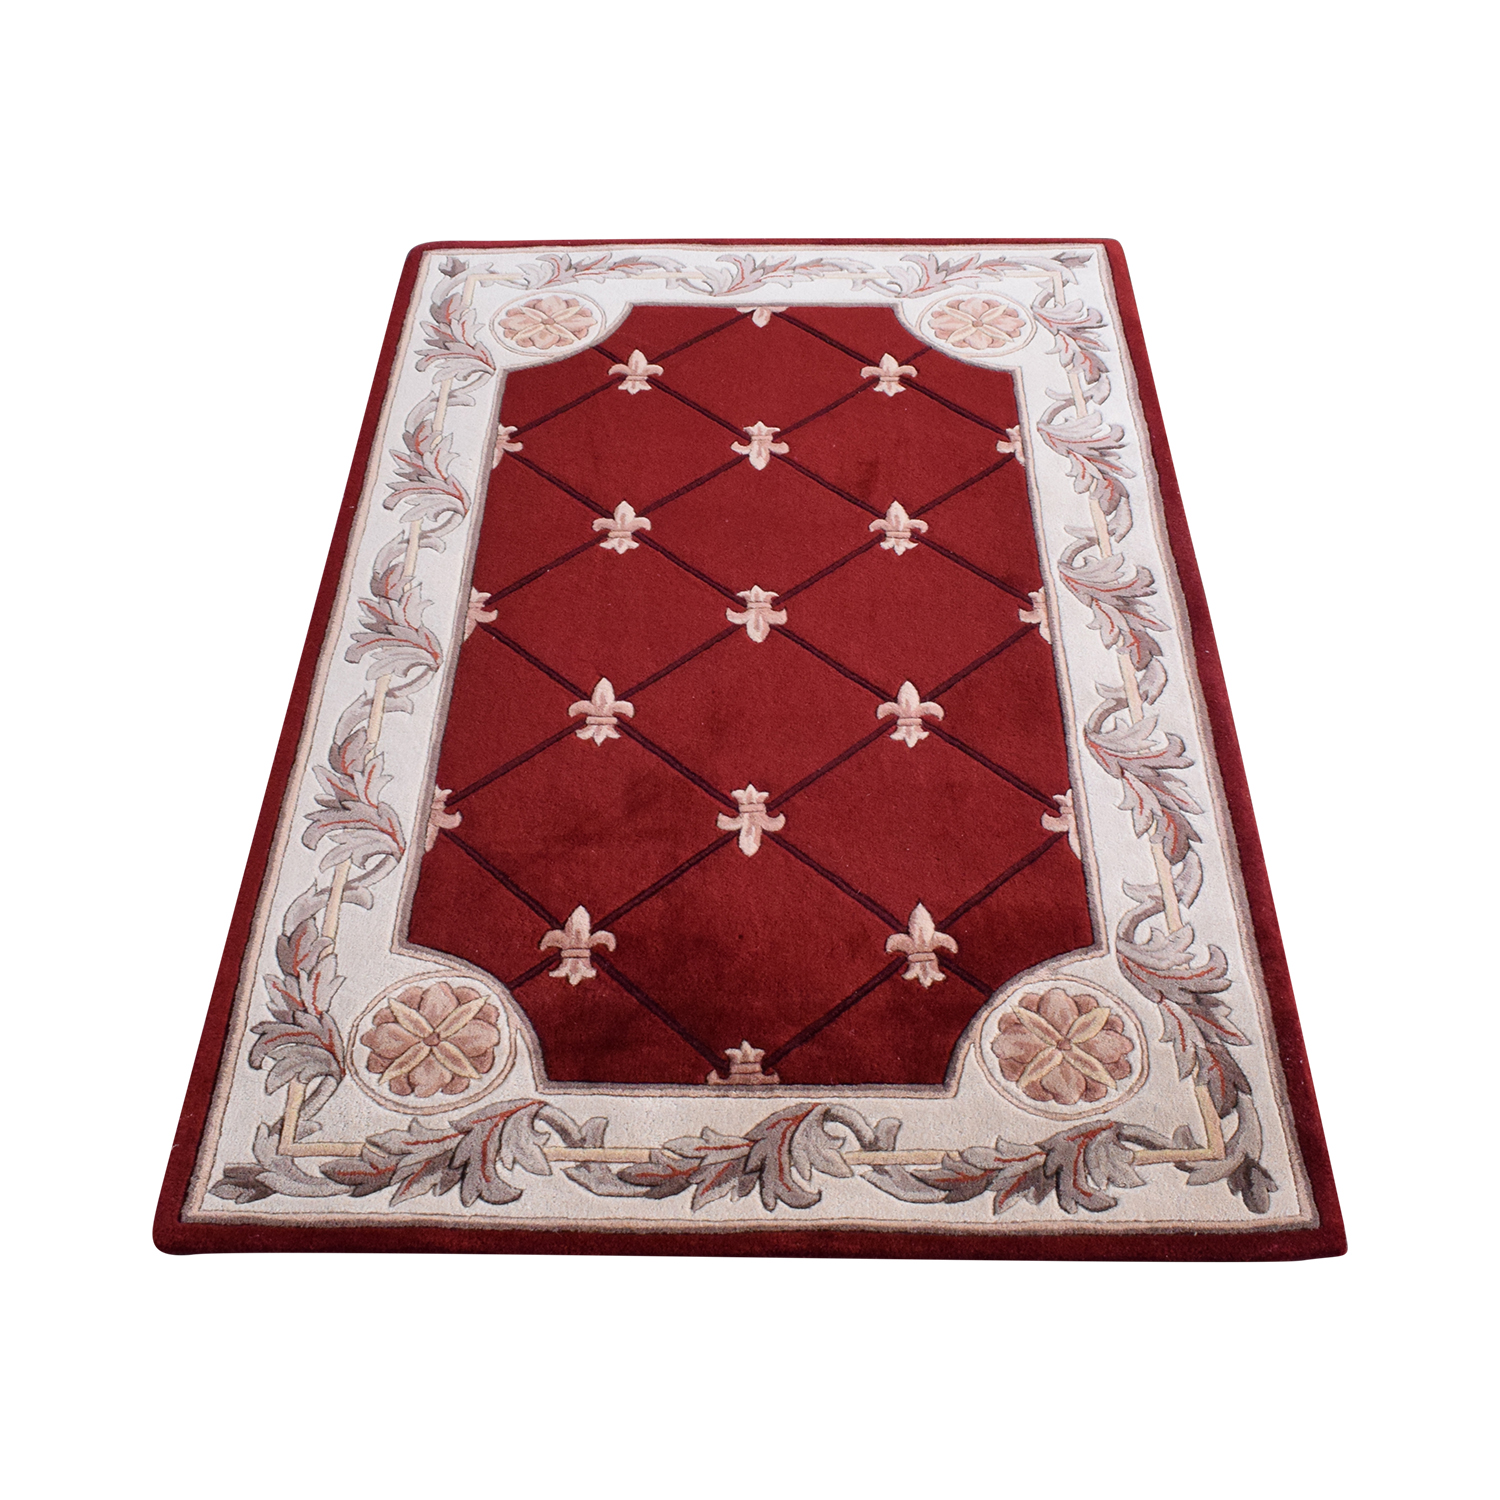 buy Macy's Kas Jewel Collection Classical Designed Red Area Rug Macy's Decor